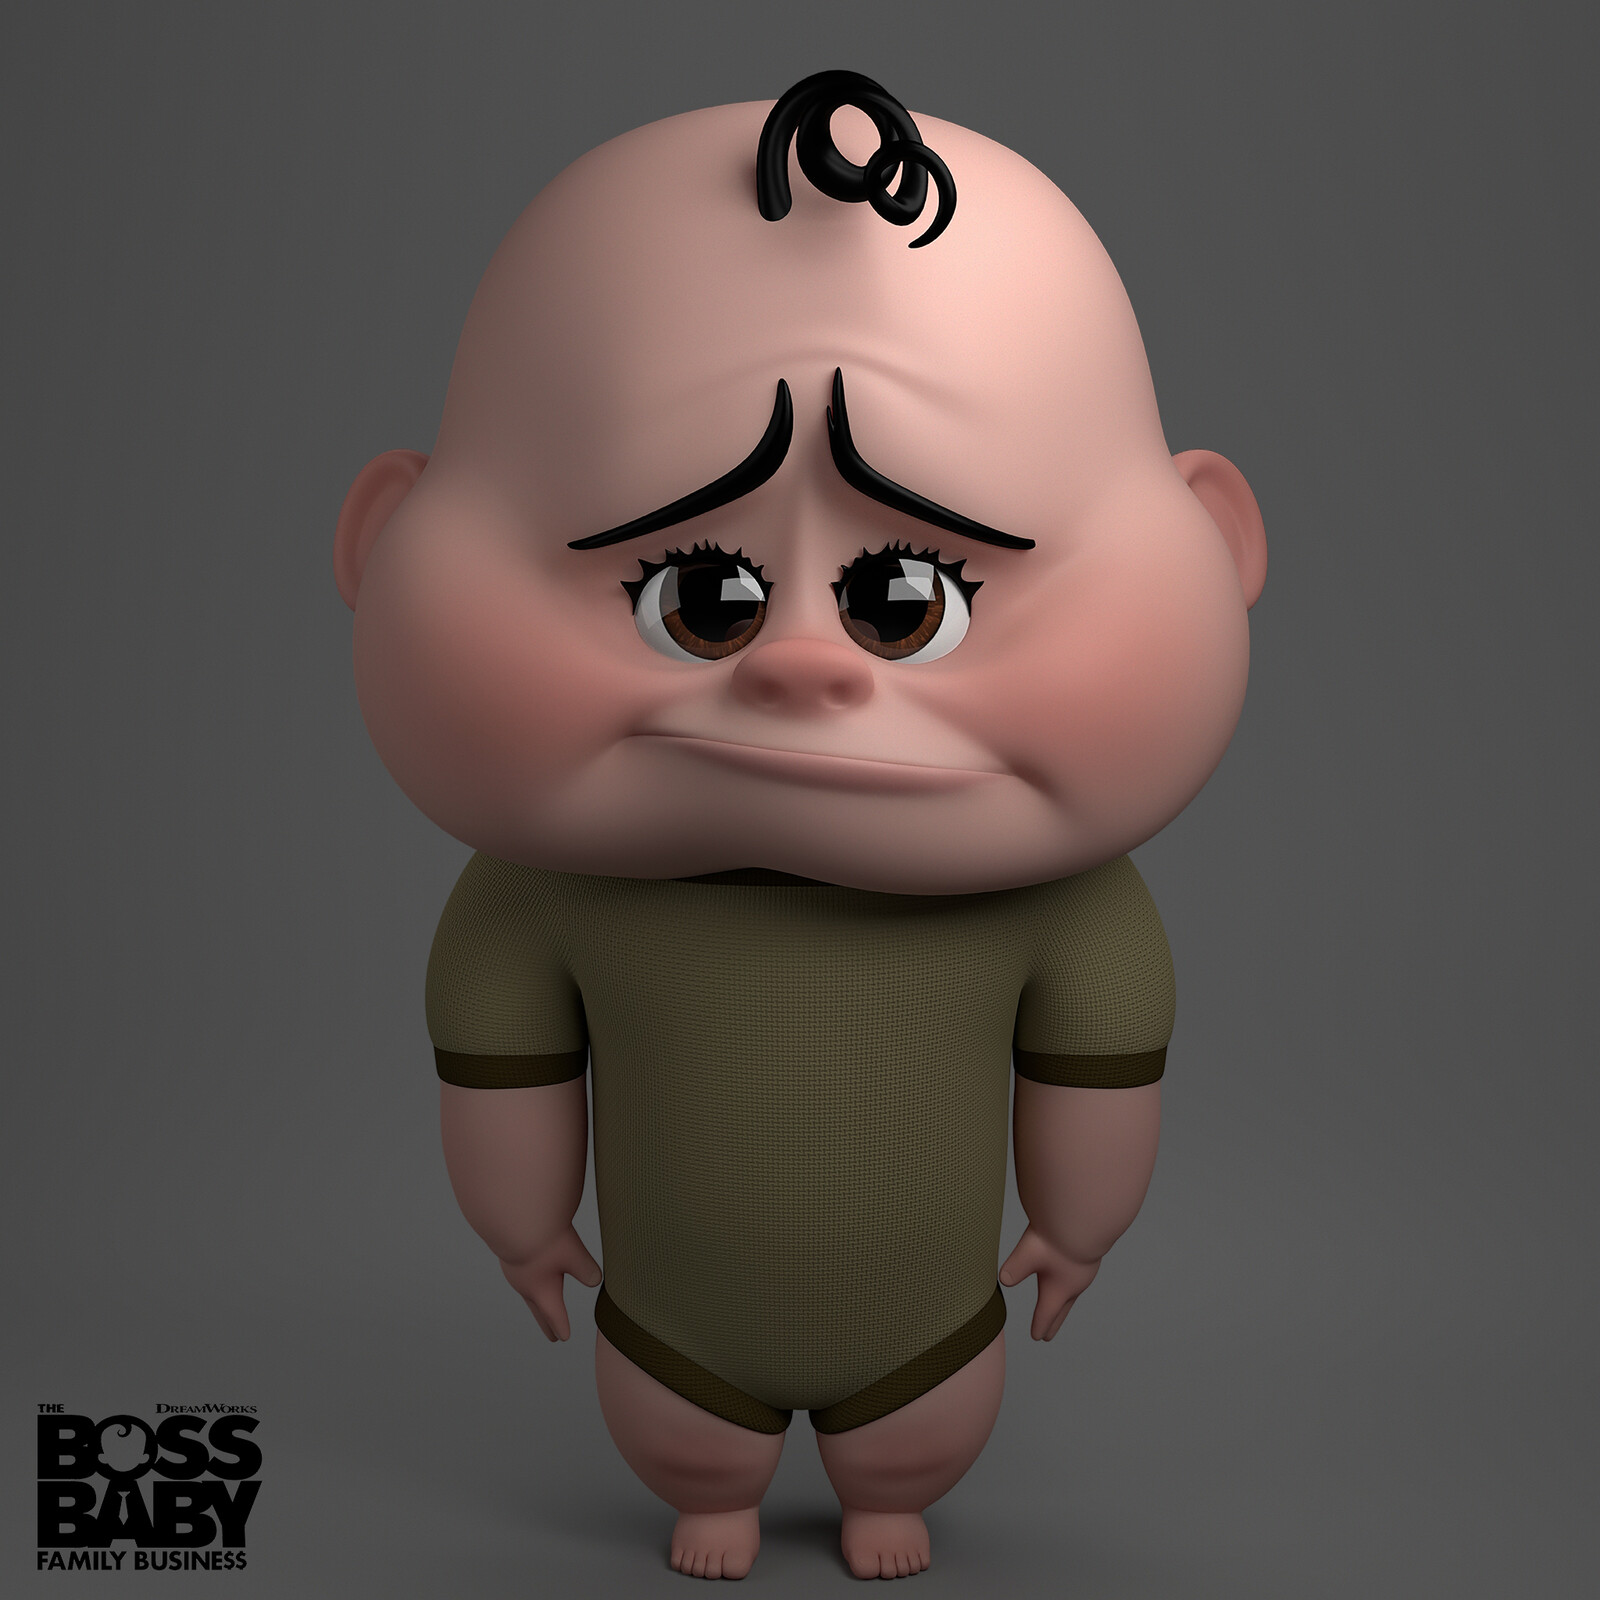 Glue Baby from The Boss Baby: Family Business